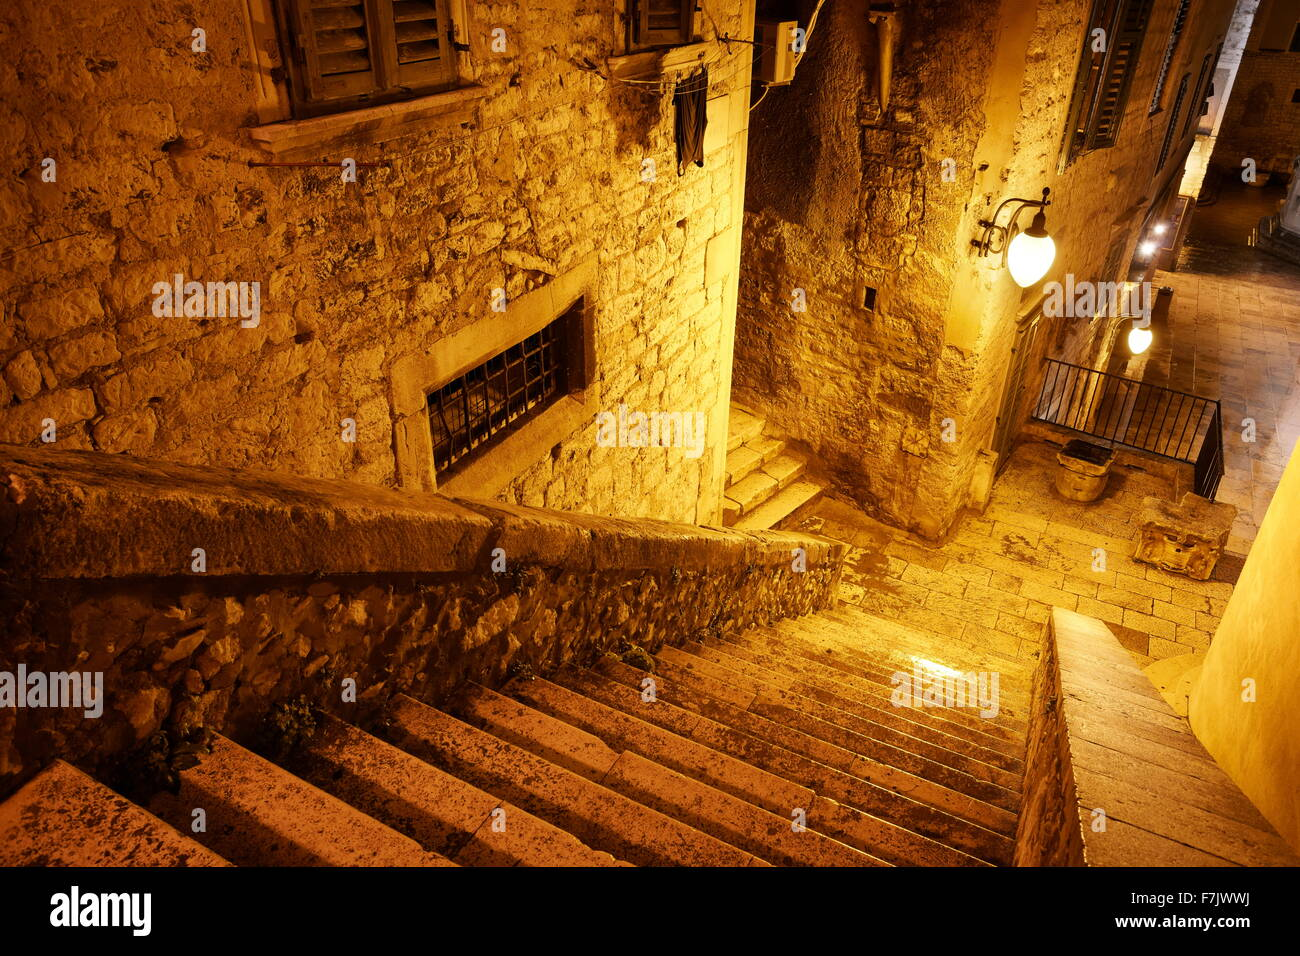 Sibenik, la rue de la vieille ville de nuit, Croatie Photo Stock